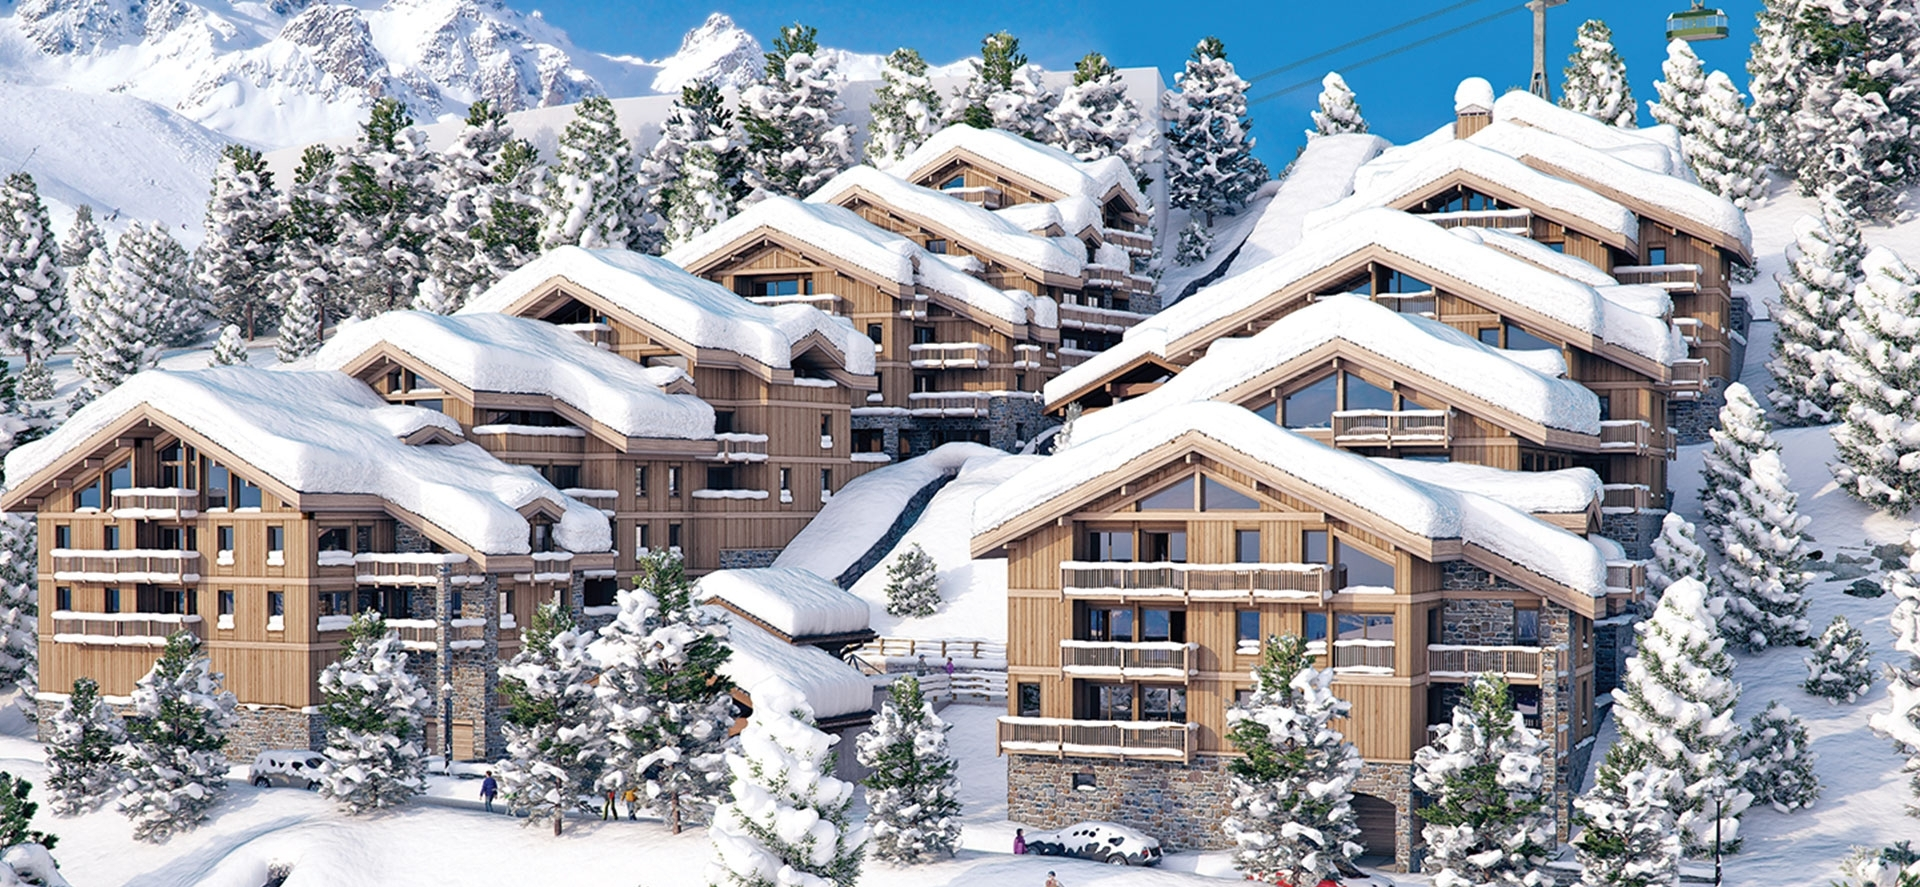 COURCHEVEL PLAZZA